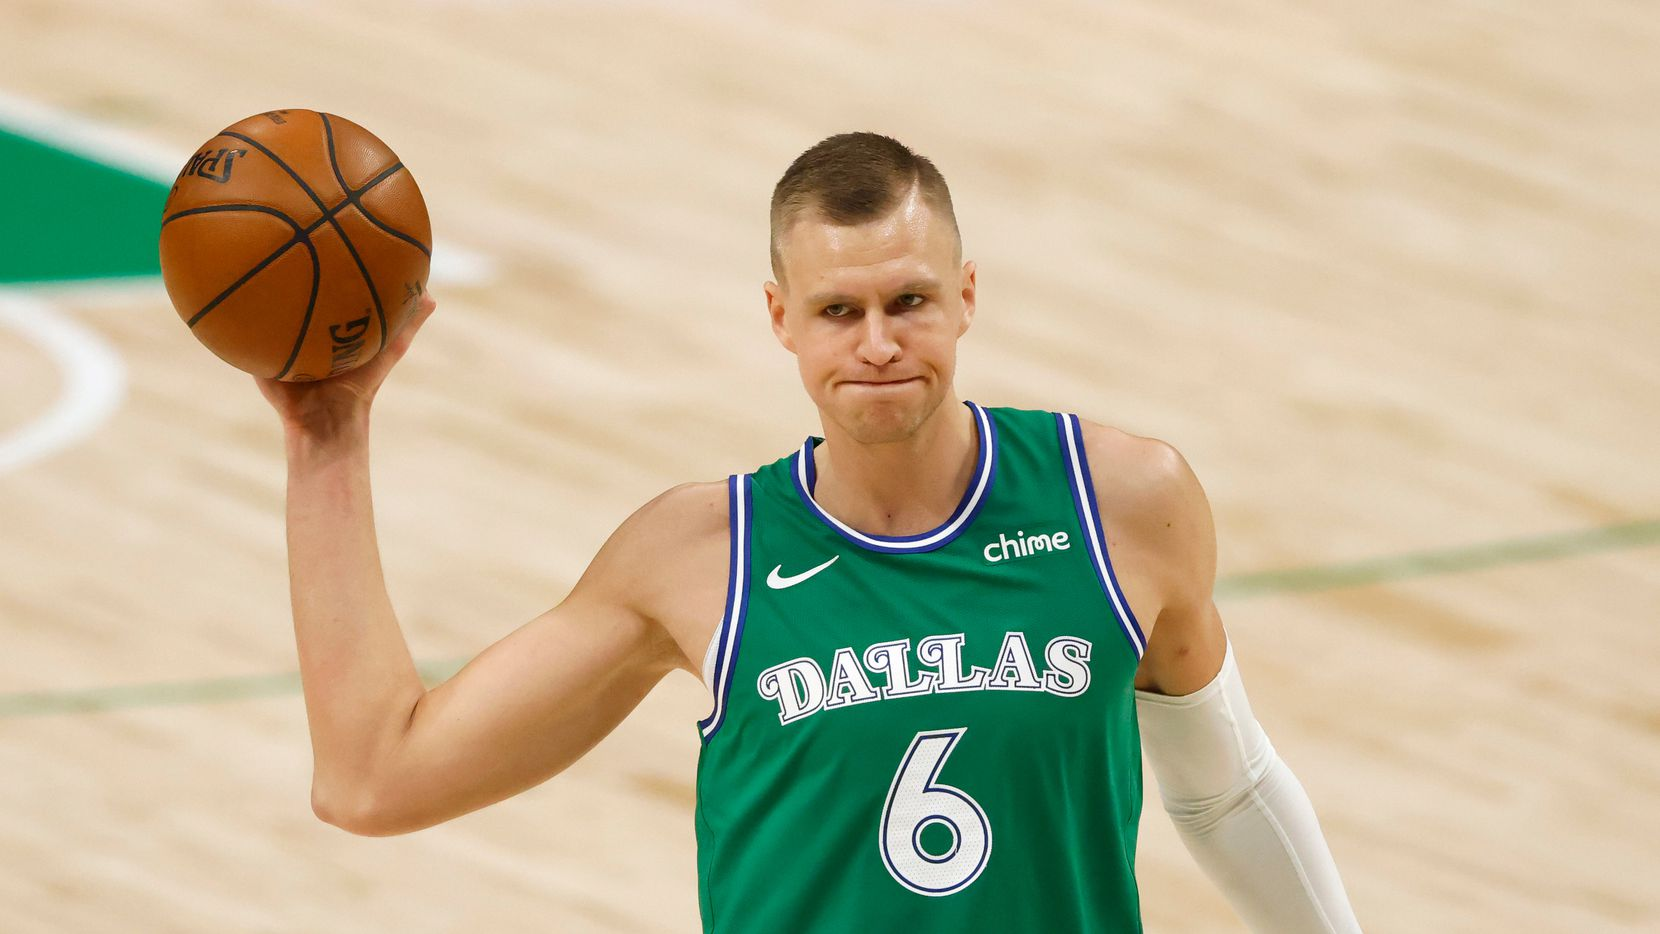 Dallas Mavericks forward Kristaps Porzingis (6) looks to pass as Minnesota Timberwolves center Naz Reid (11) defends during the first quarter of play at American Airlines Center on Monday, February 8, 2021 in Dallas.